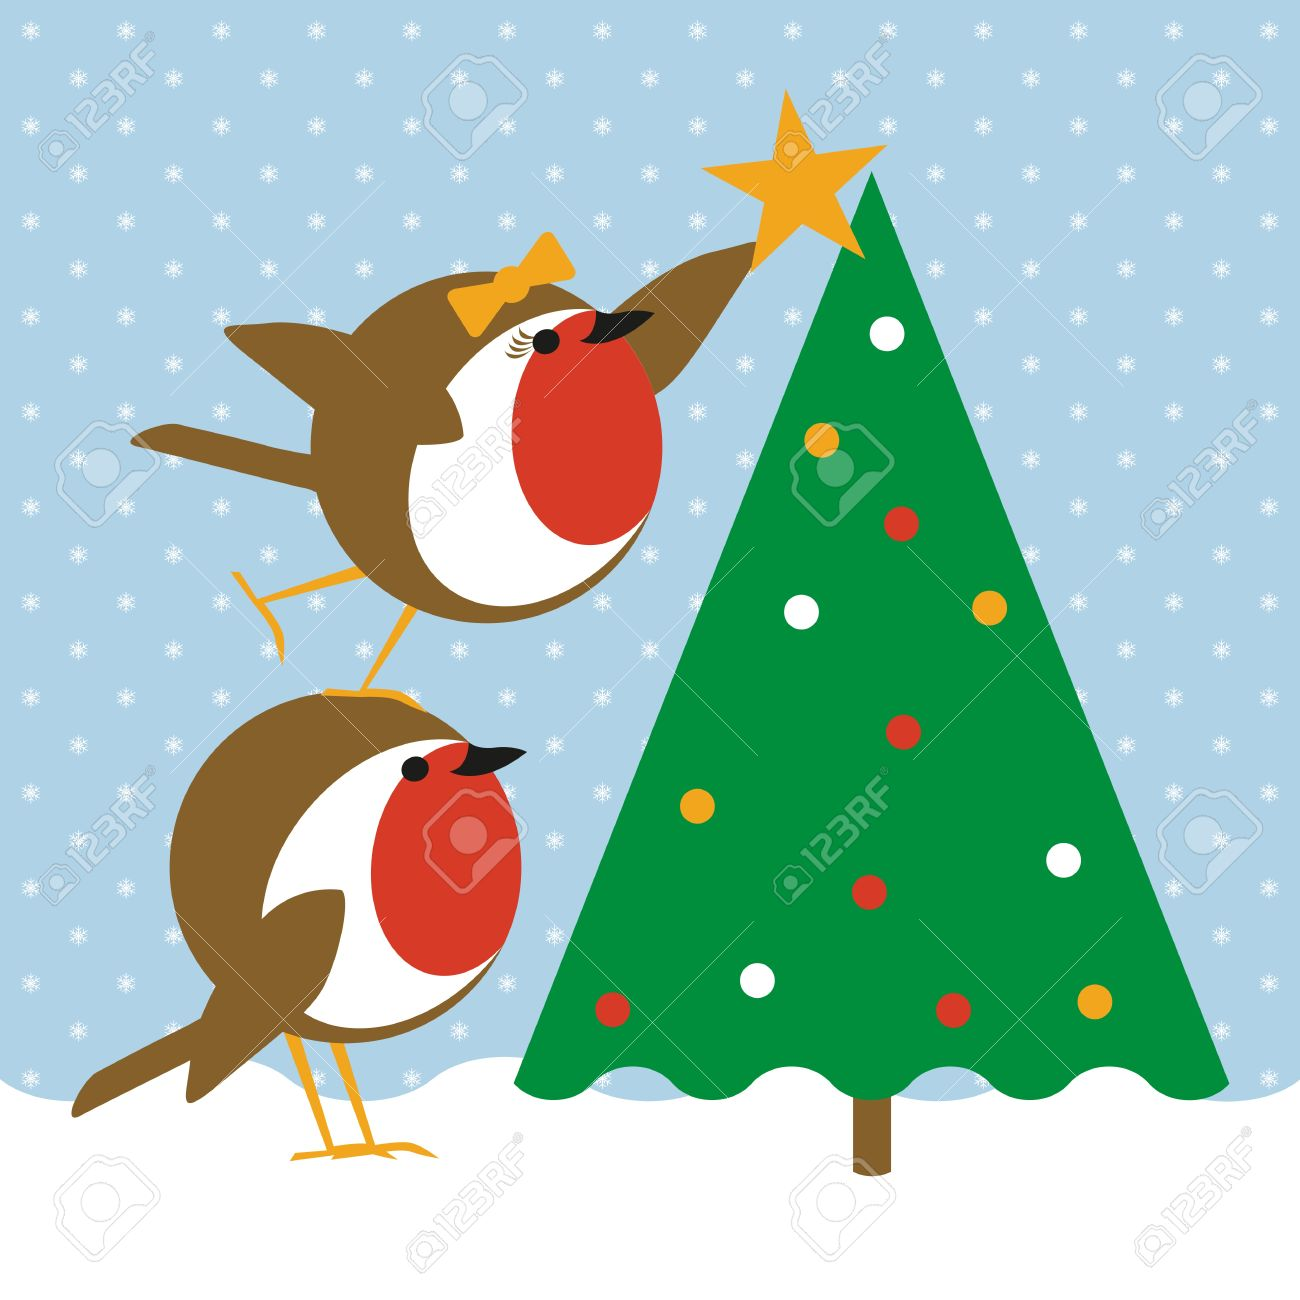 Humorous Christmas Card With Cute Robins Placing A Star On A